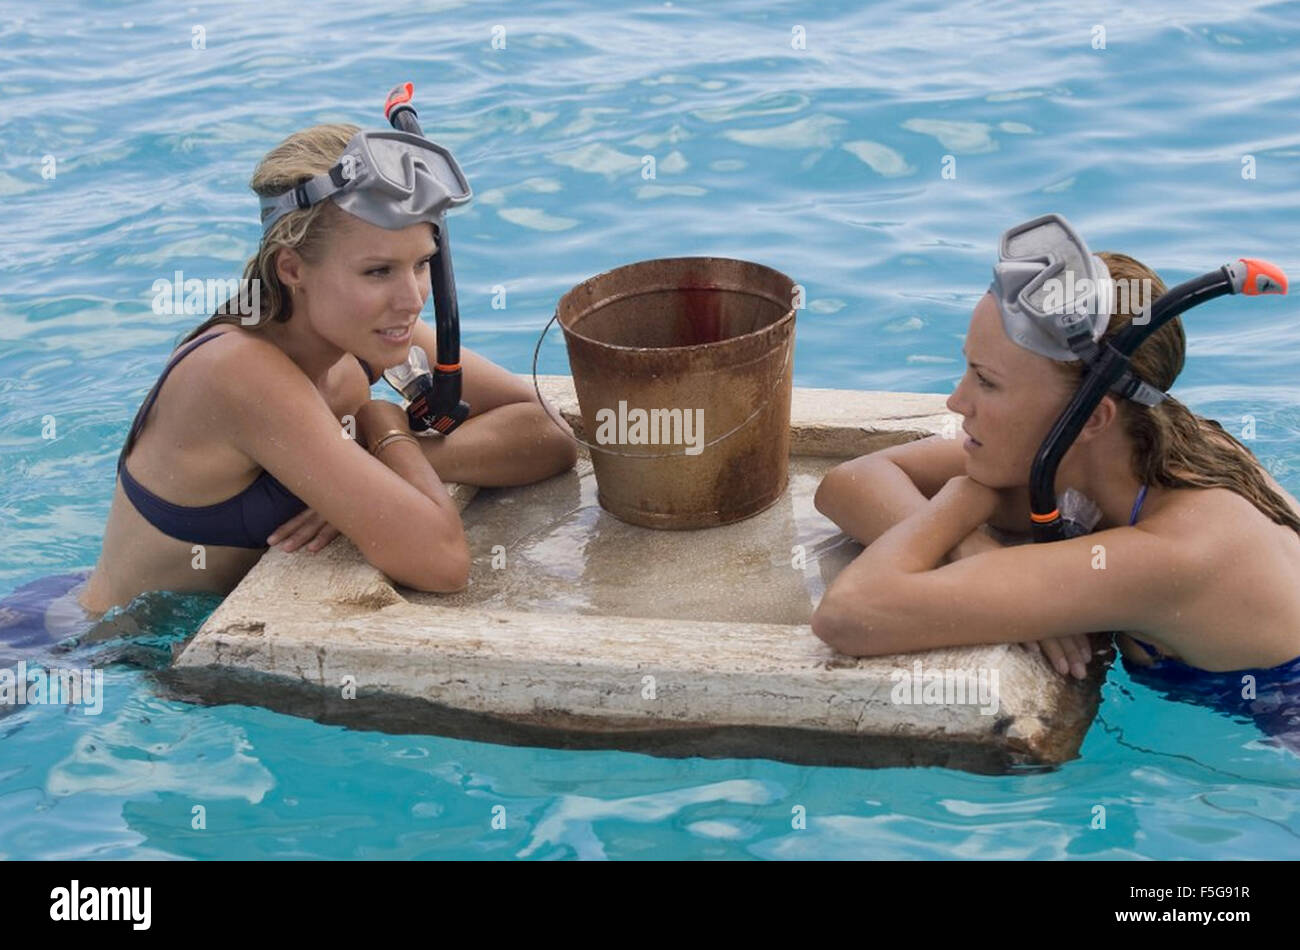 COUPLES RETREAT 2009 Universal Pictures film with Malin Akerman at left and Kristen Bell - Stock Image